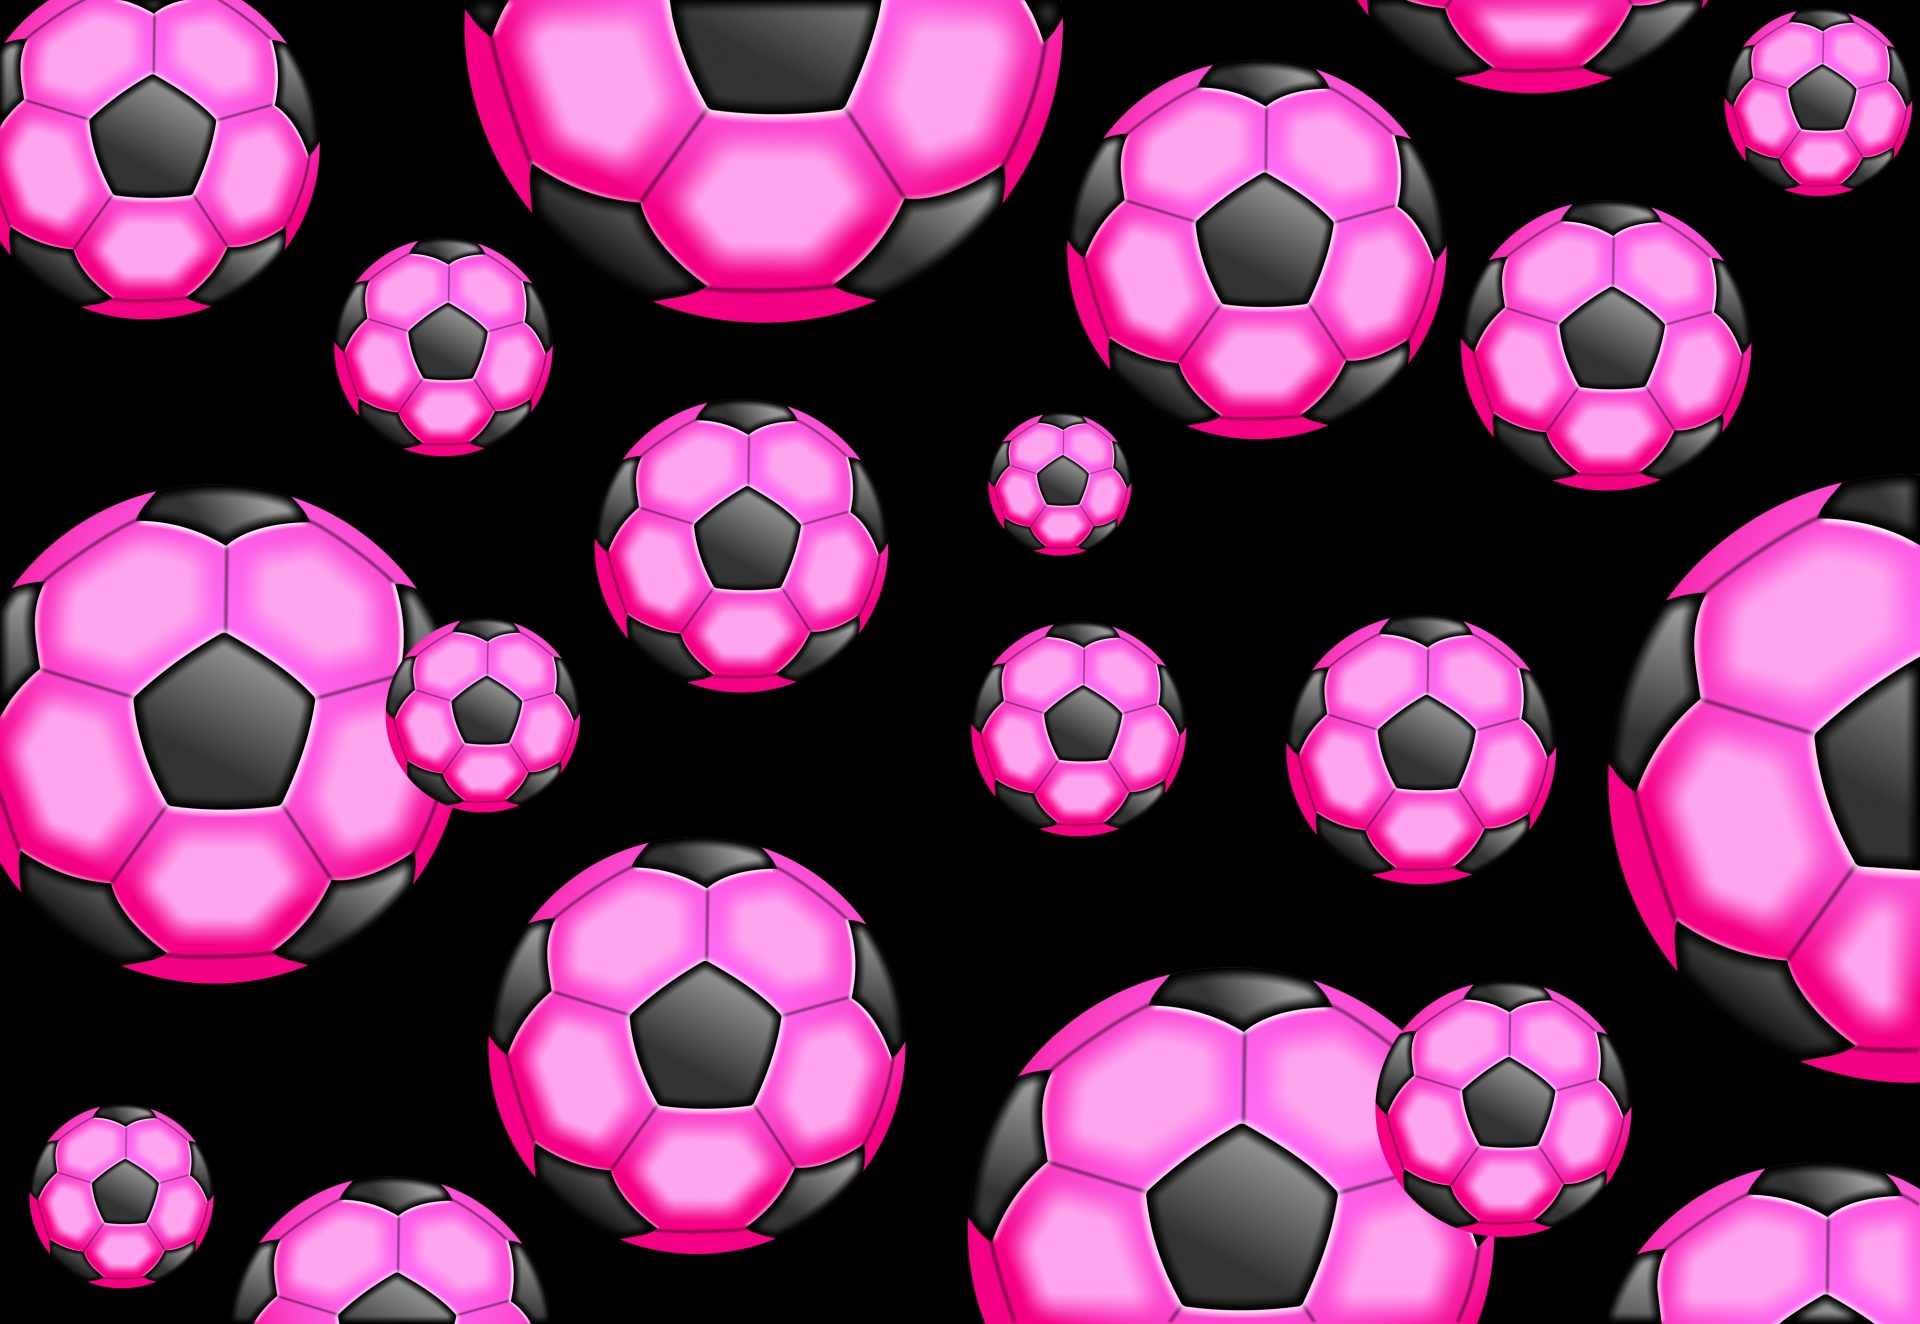 Download Free 3d Wallpapers For Windows 8 Soccer Balls Free Stock Photo Public Domain Pictures